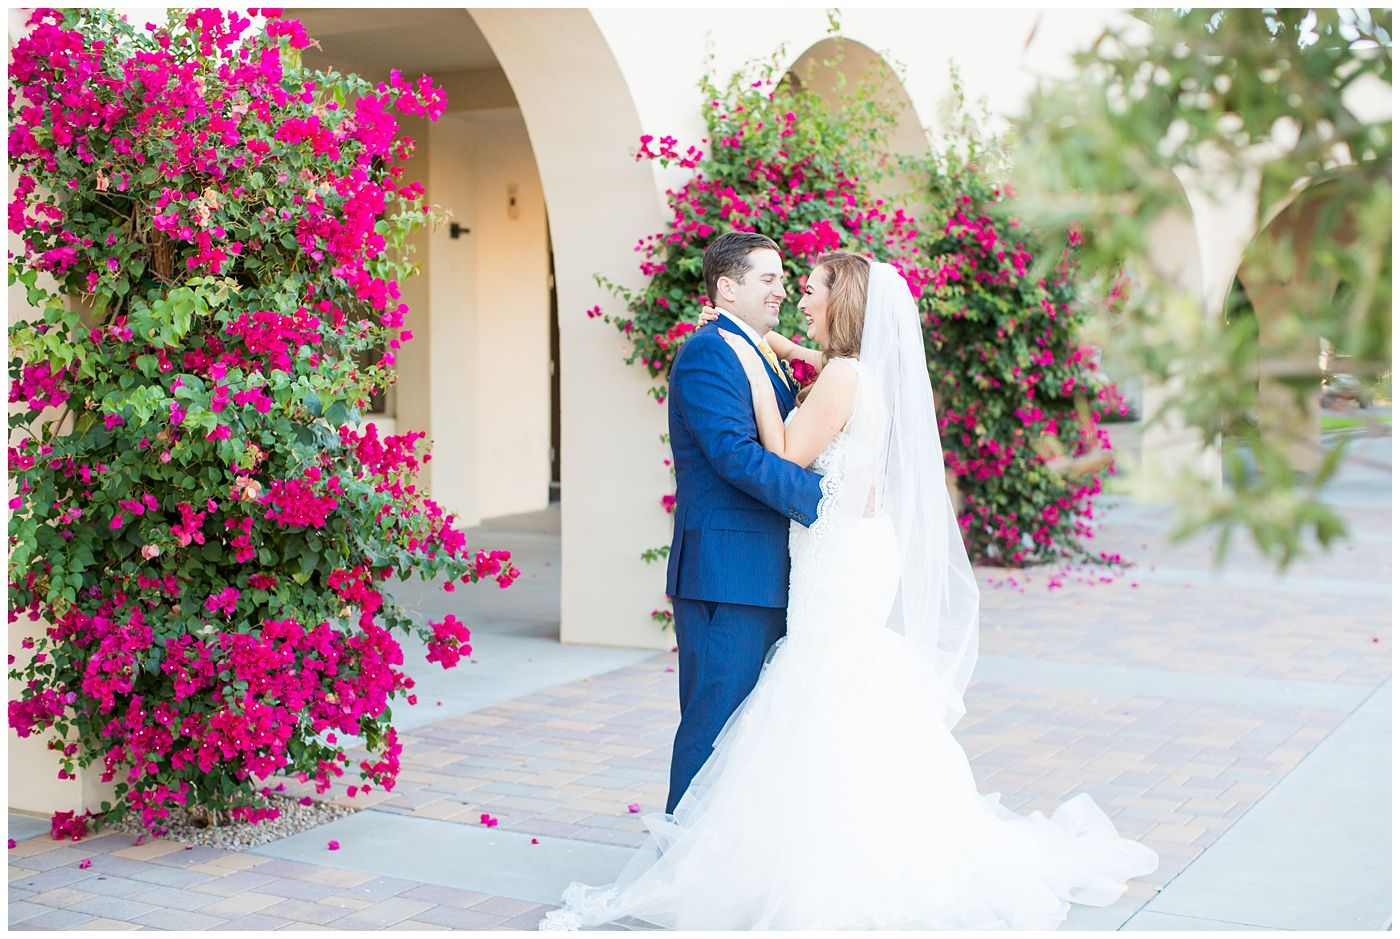 Luxurious wedding at private residence in scottsdale dusty bride